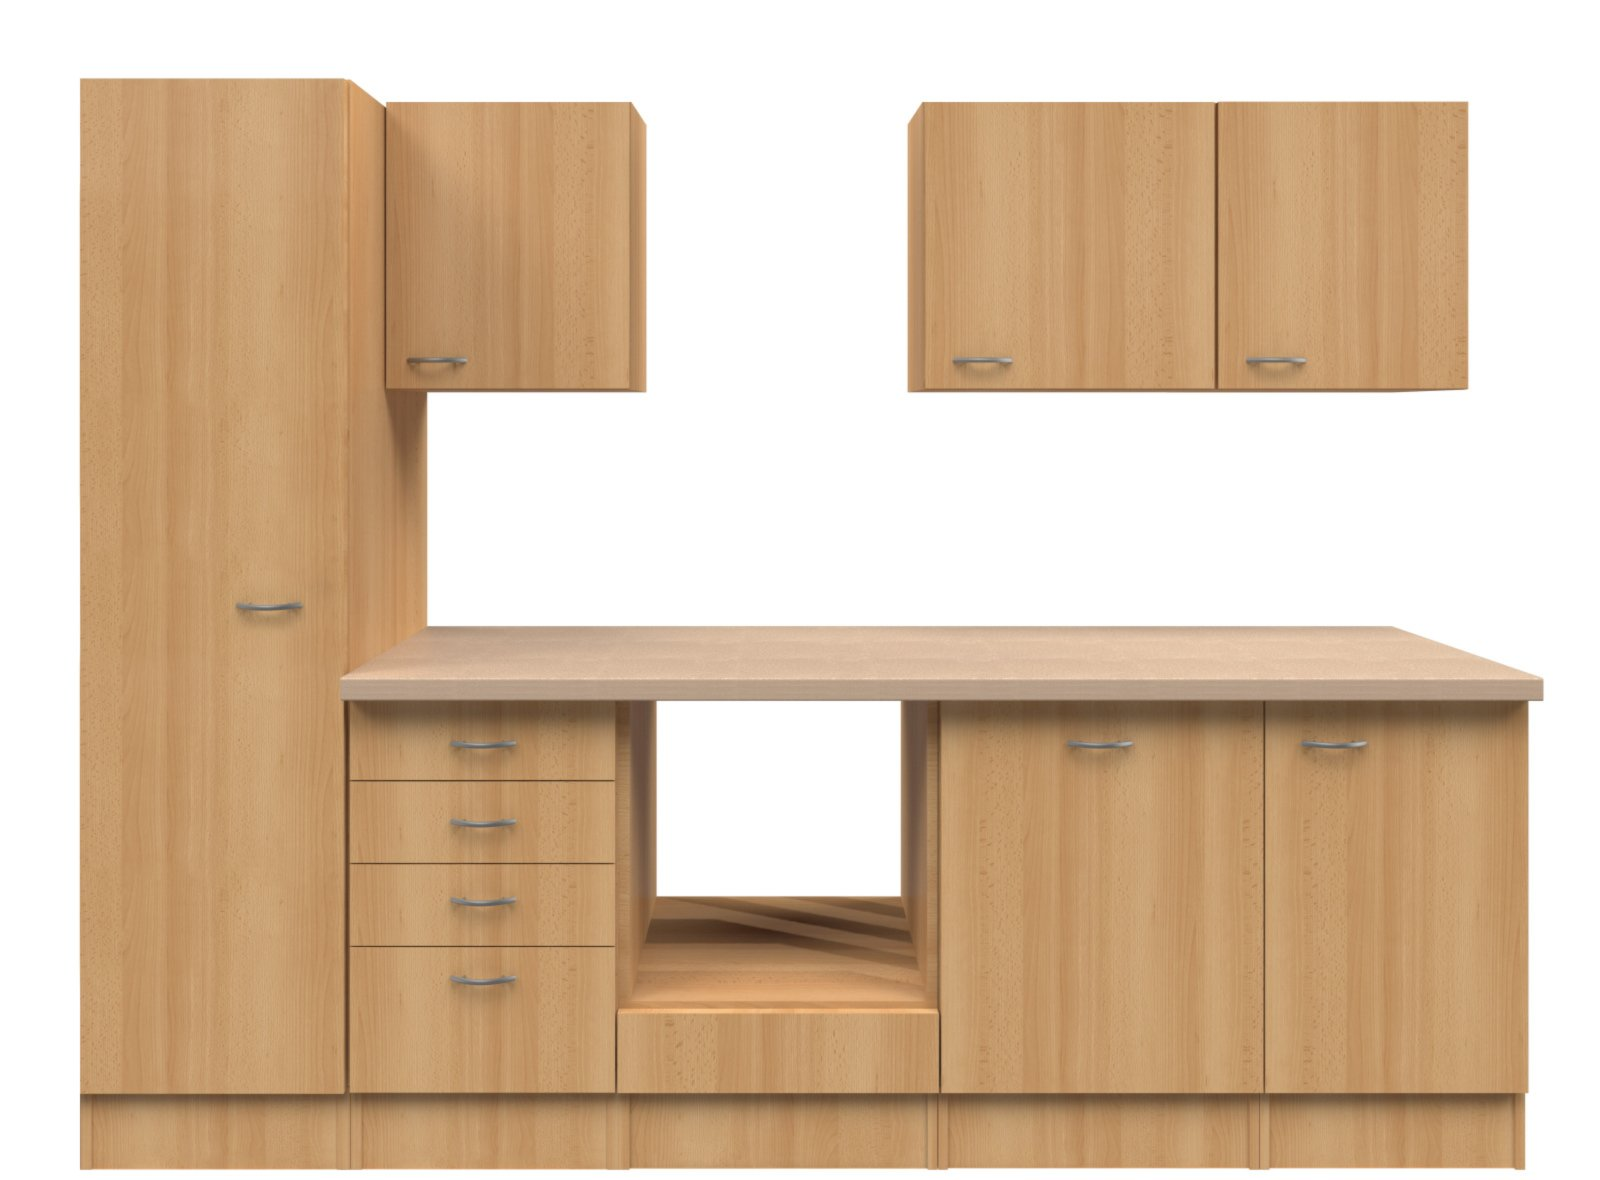 k chenblock nano buche 270 cm k chenzeilen ohne e. Black Bedroom Furniture Sets. Home Design Ideas